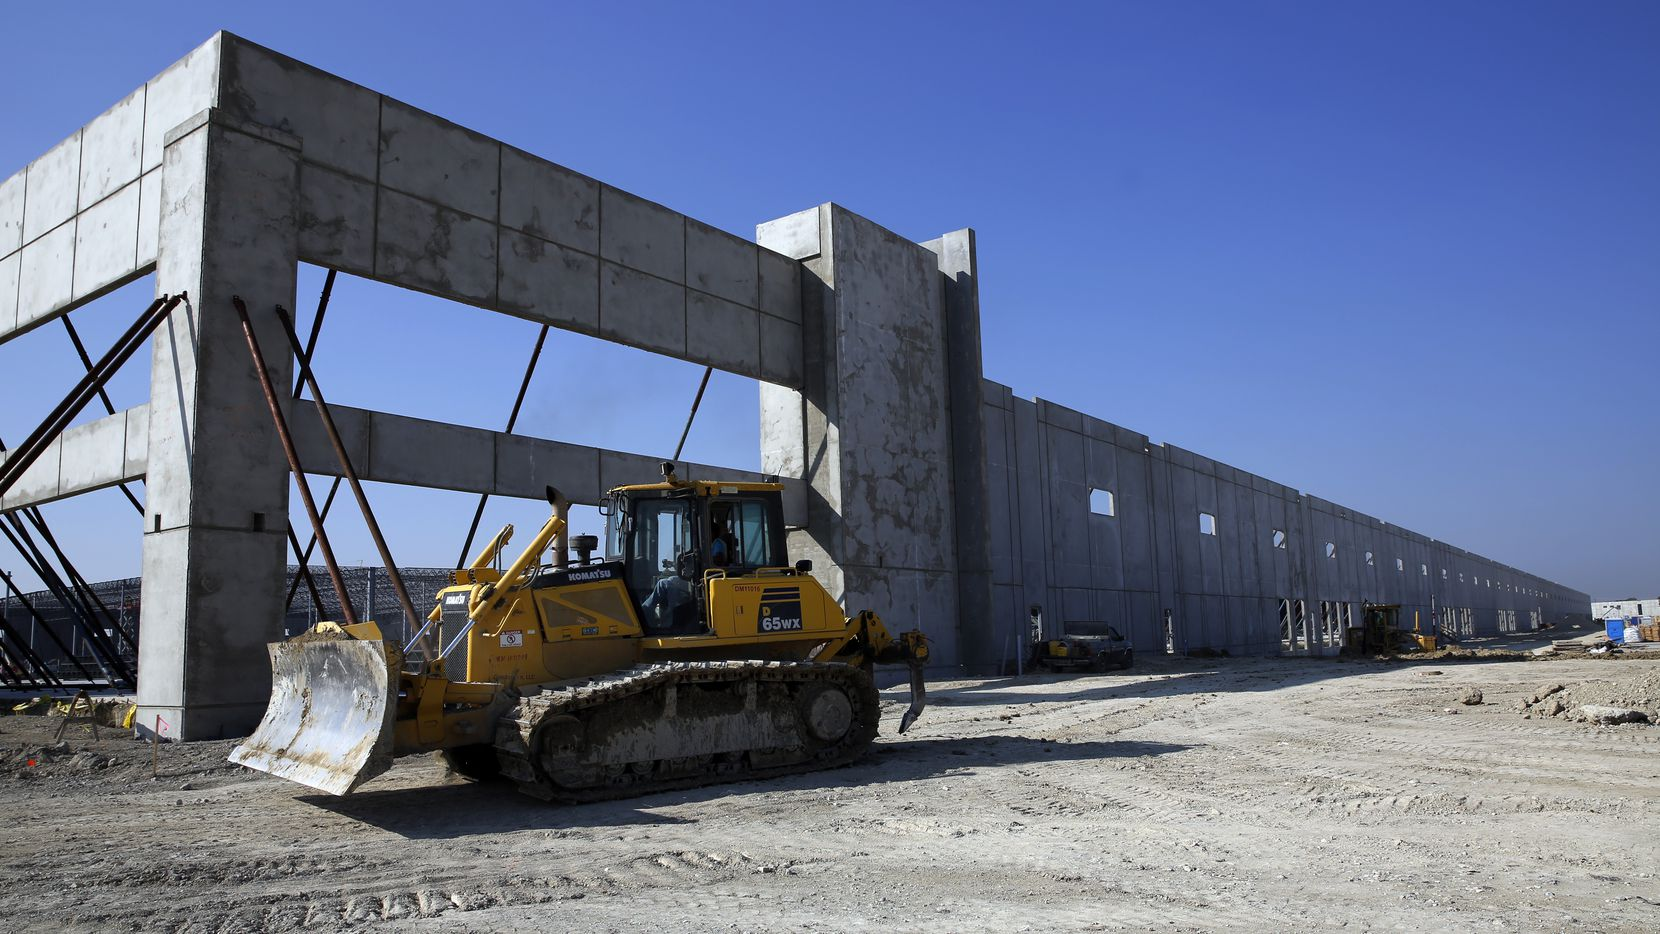 More than 23 million square feet of warehouse space is being built in the D-FW area.